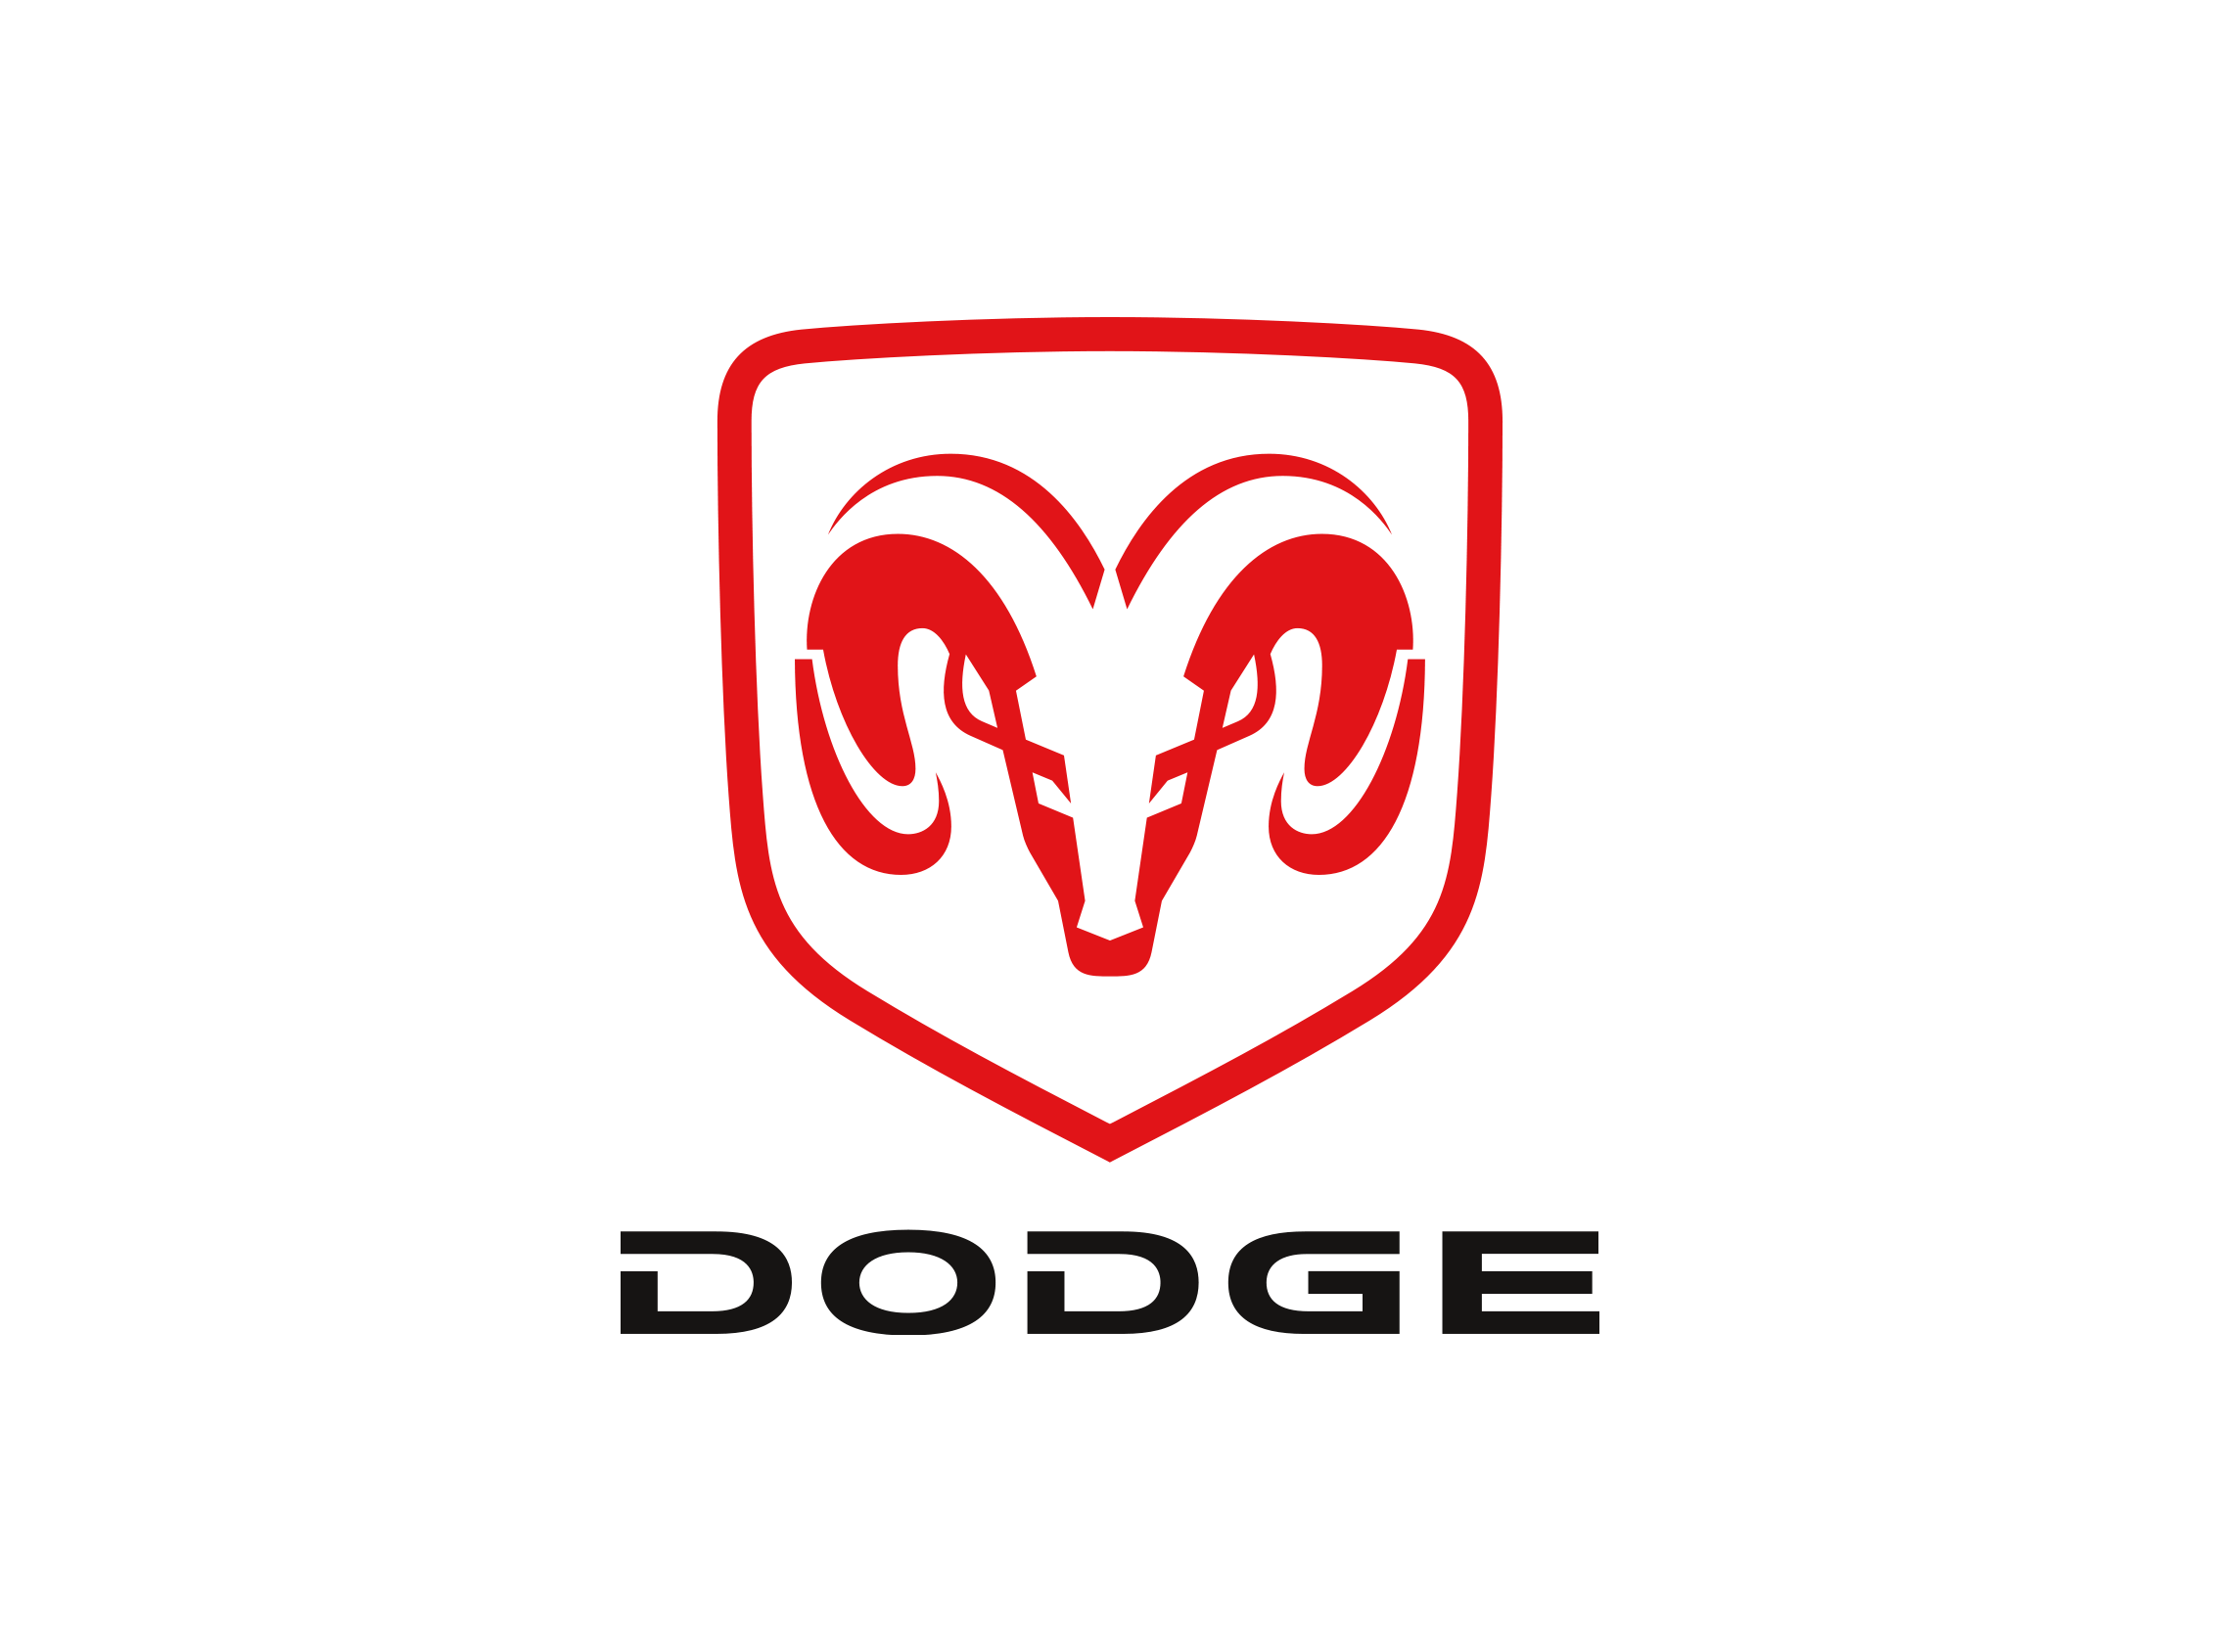 DODGE MOTOR IMPORT BRANDS VOITURE IMPORT USA MIAMI IMPORT VOITURE EUROP IMPORT USA MOTOR IMPORT7 - GMC DUBAI importation voiture Dubai GMC importation vehicule emirats arabe unis motorimport